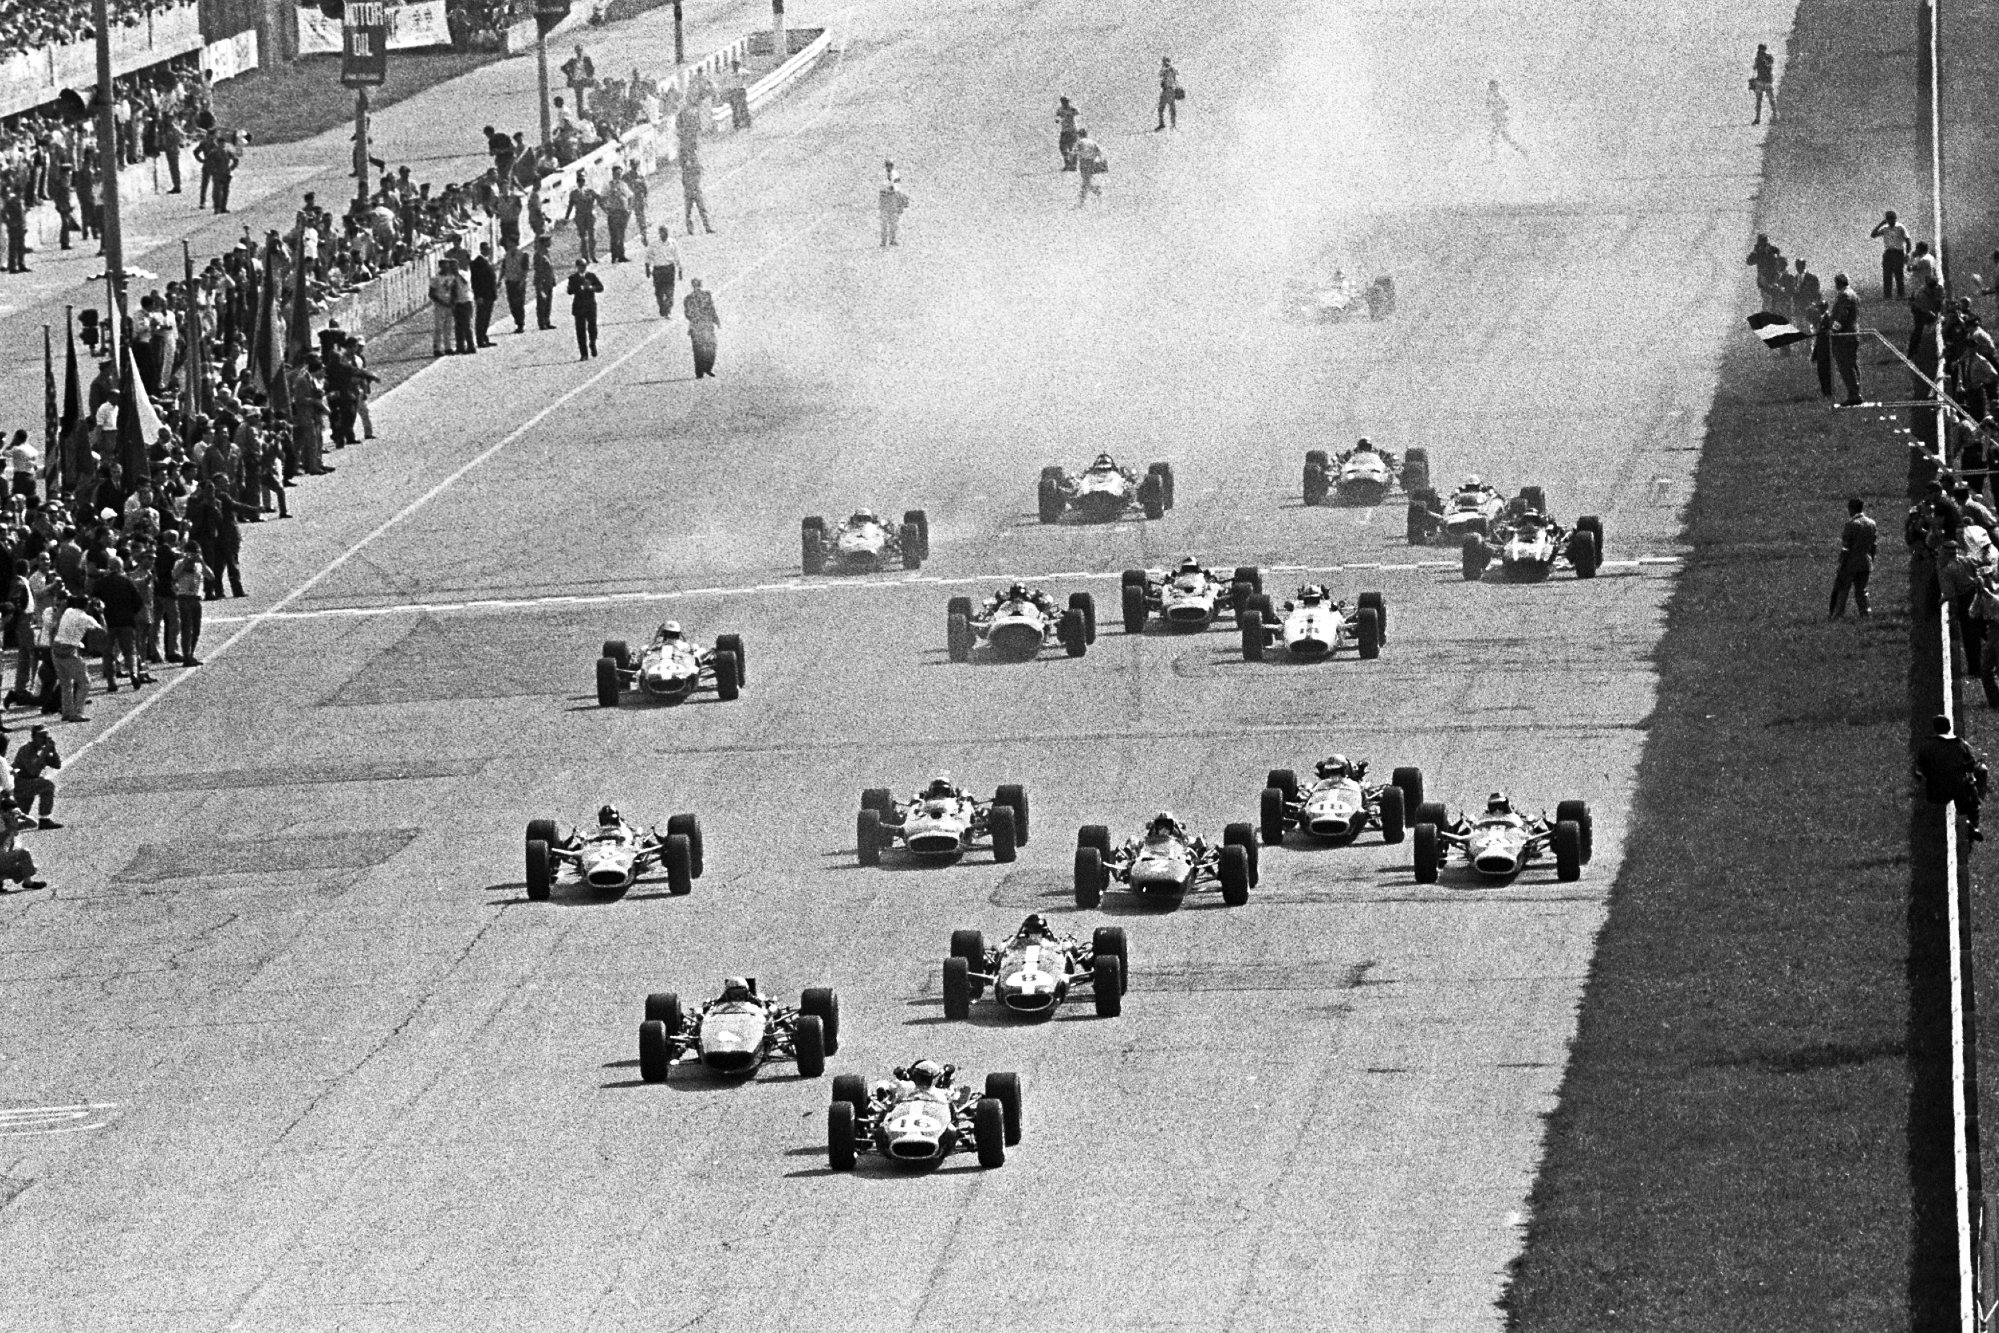 Start of the 1967 Italian GP